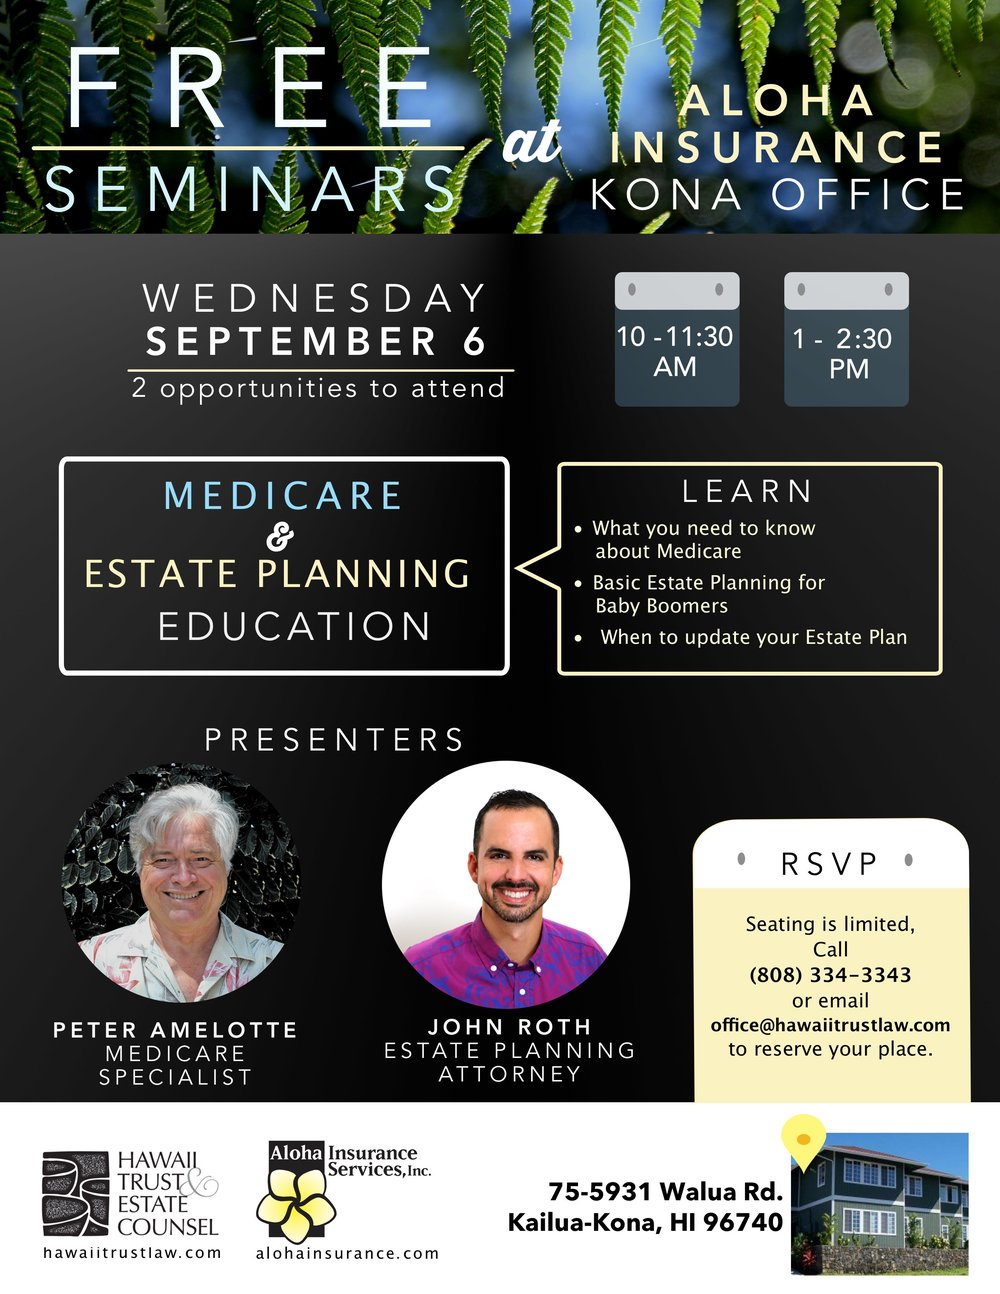 Medicare Estate Planning Seminar Kona